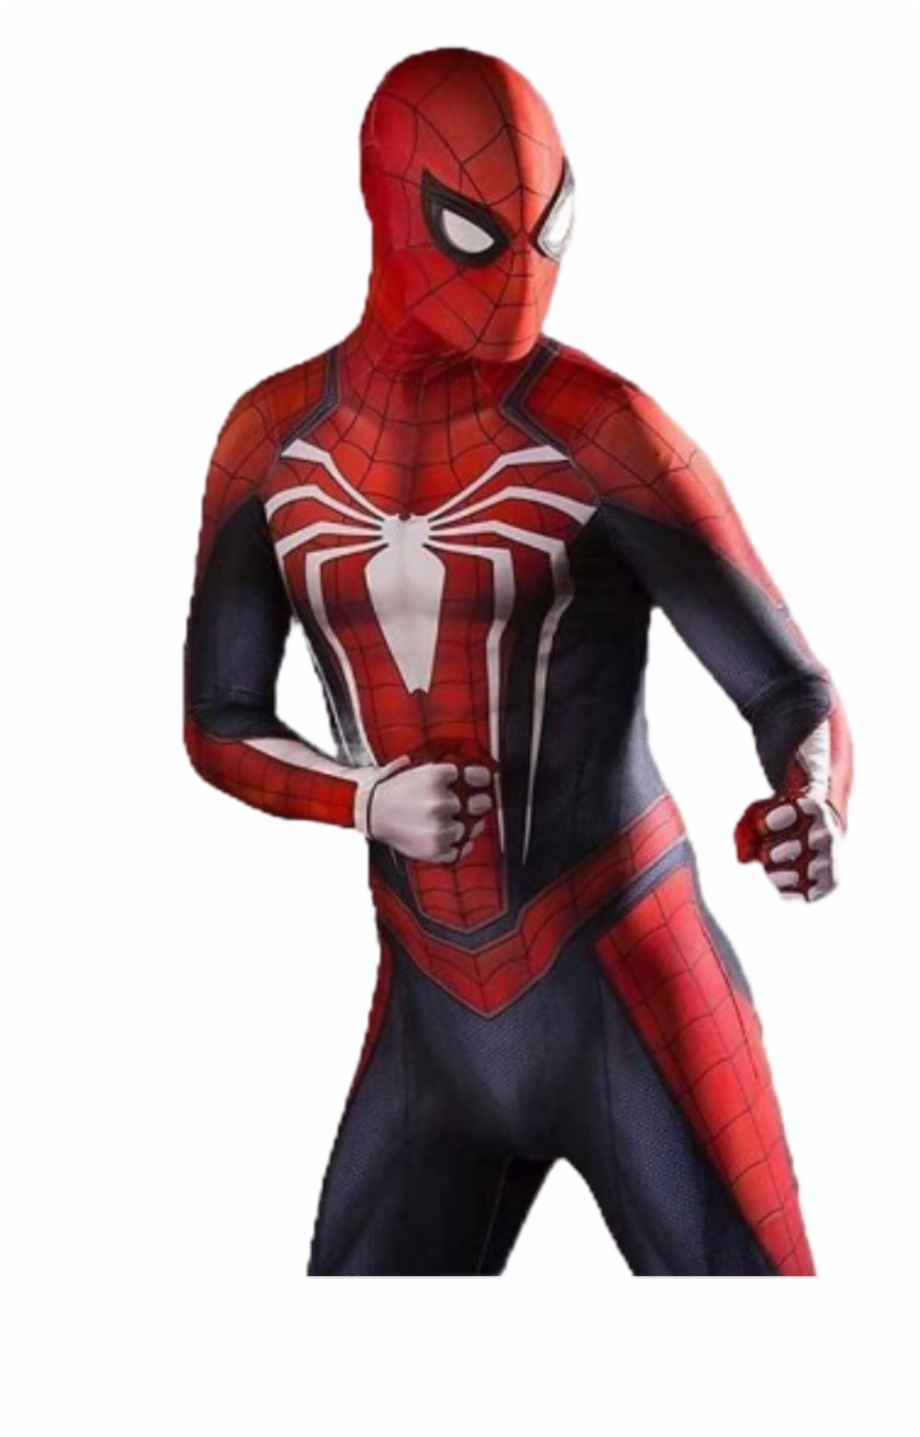 Spiderman Ps4 Freetoedit Spider Man Ps4 Costume.